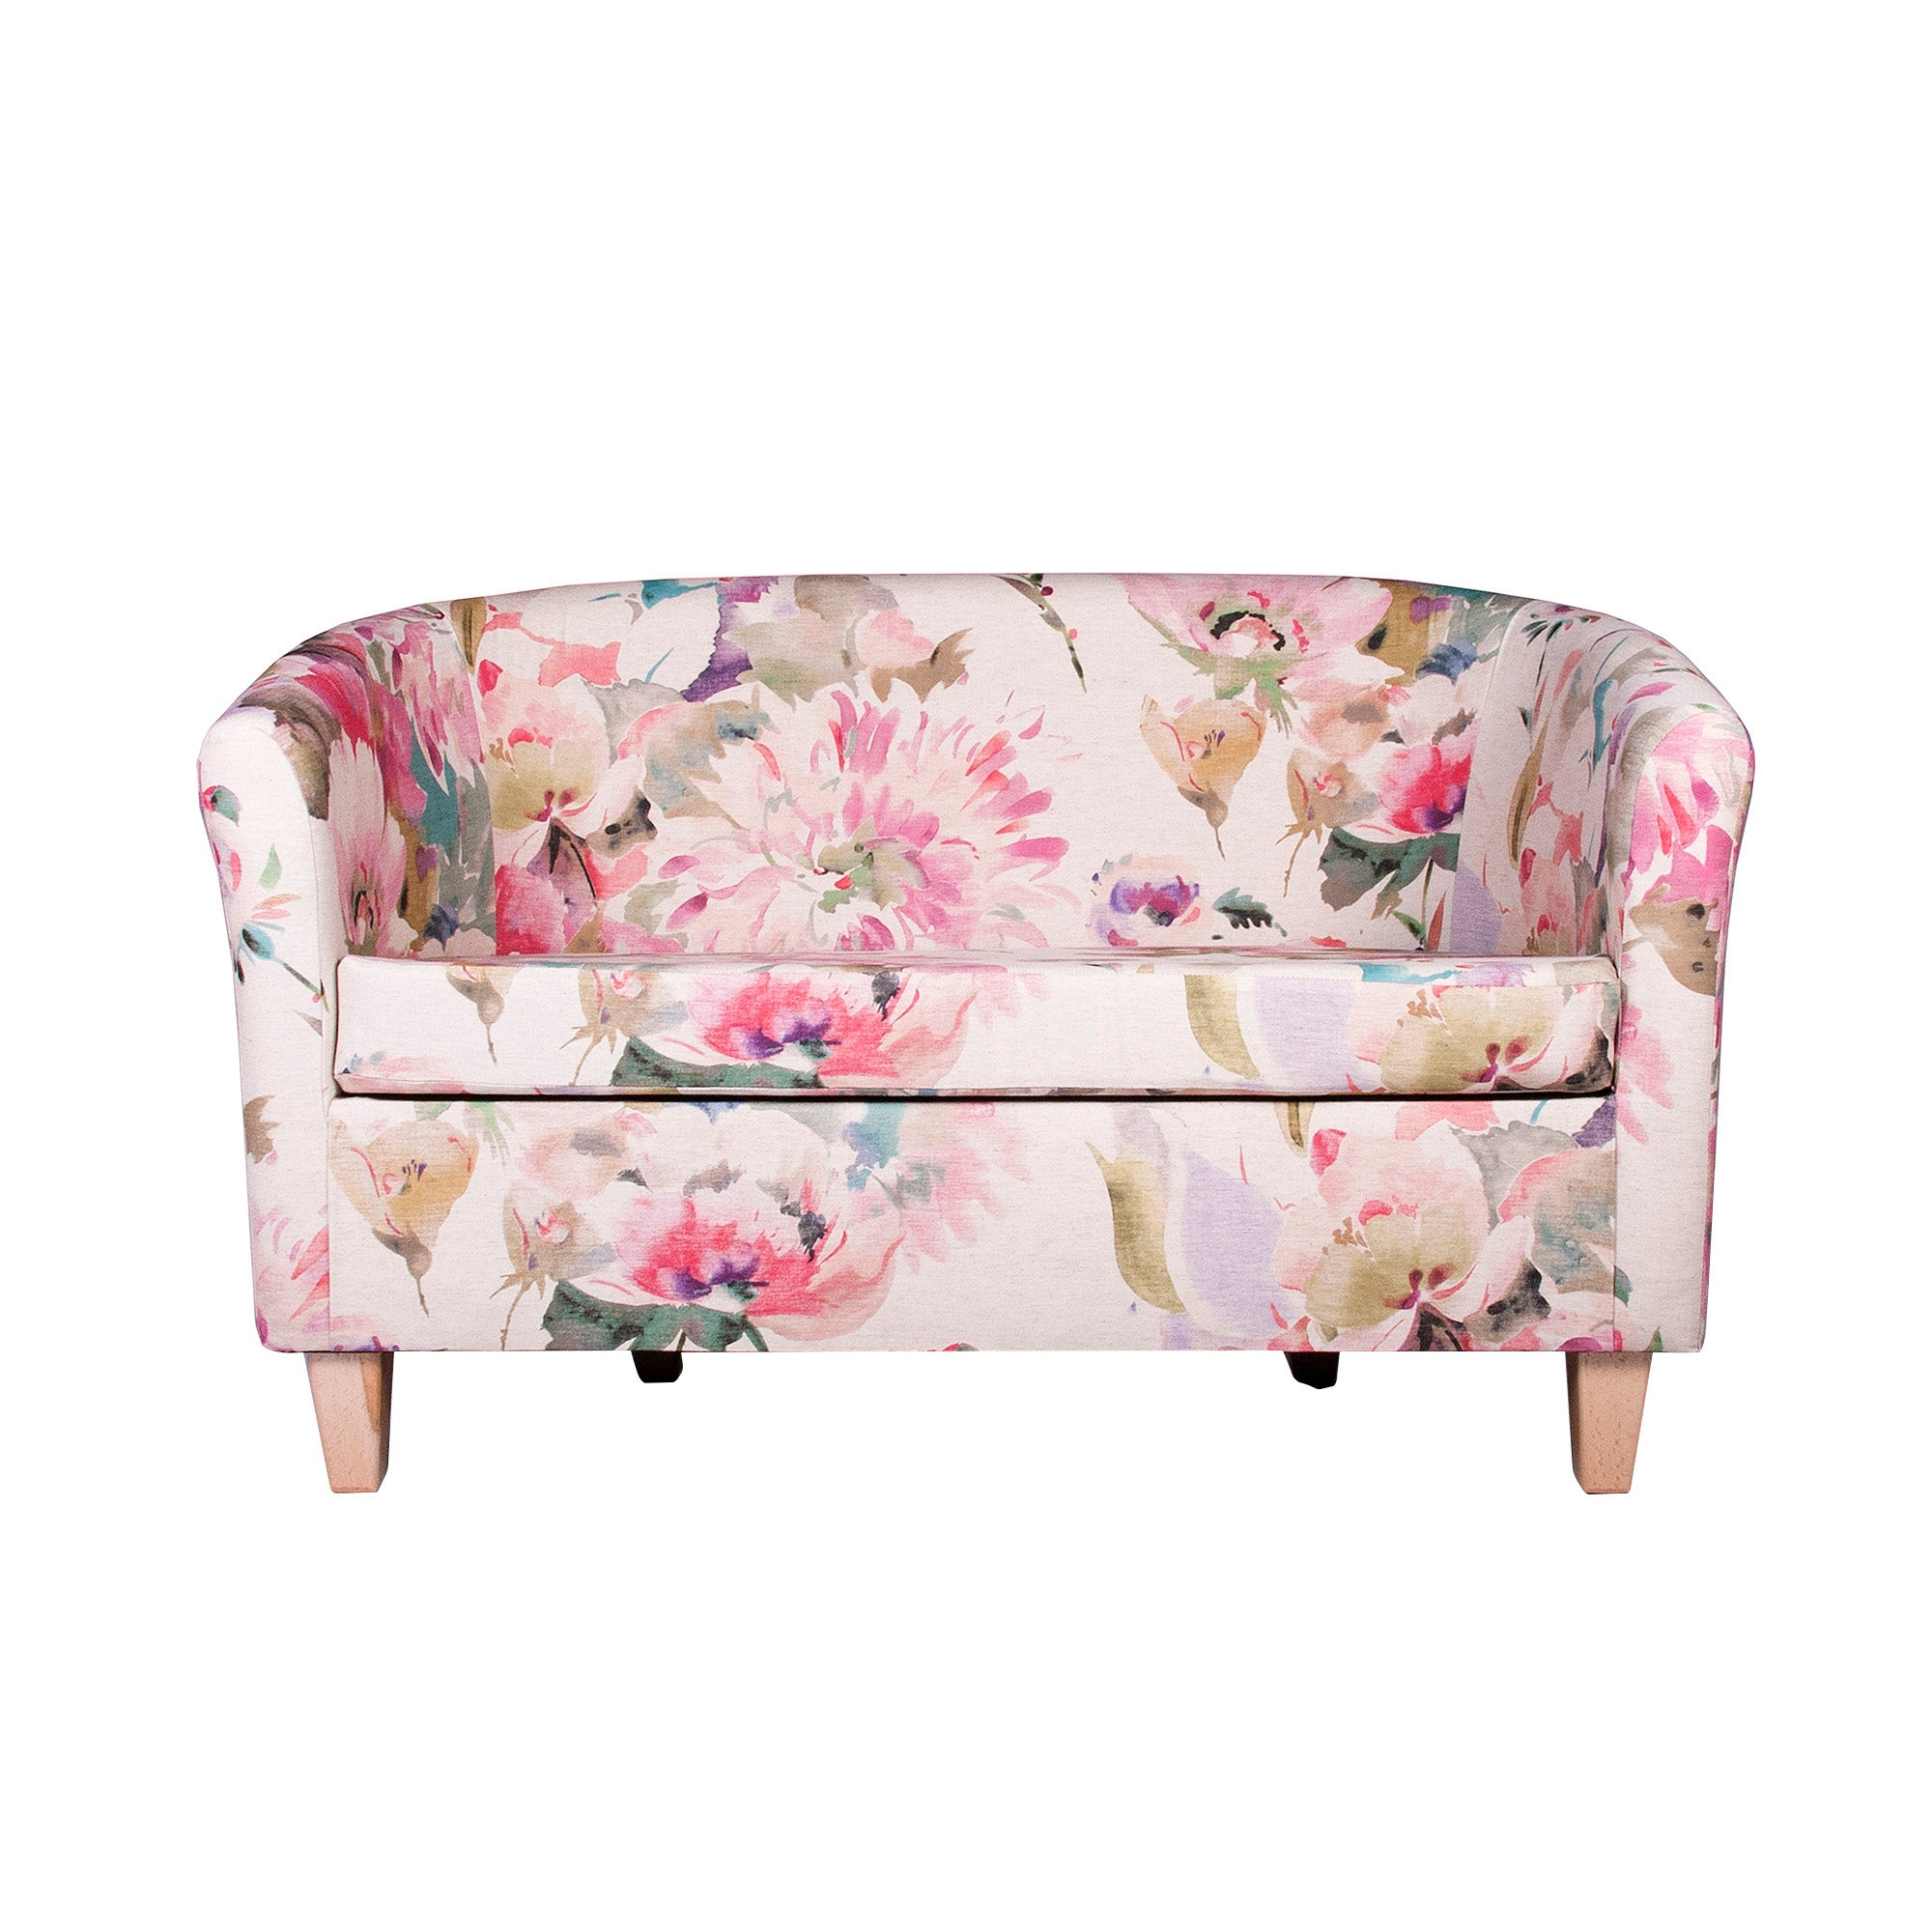 Photo of Floral bloom two seater tub chair pink / cream